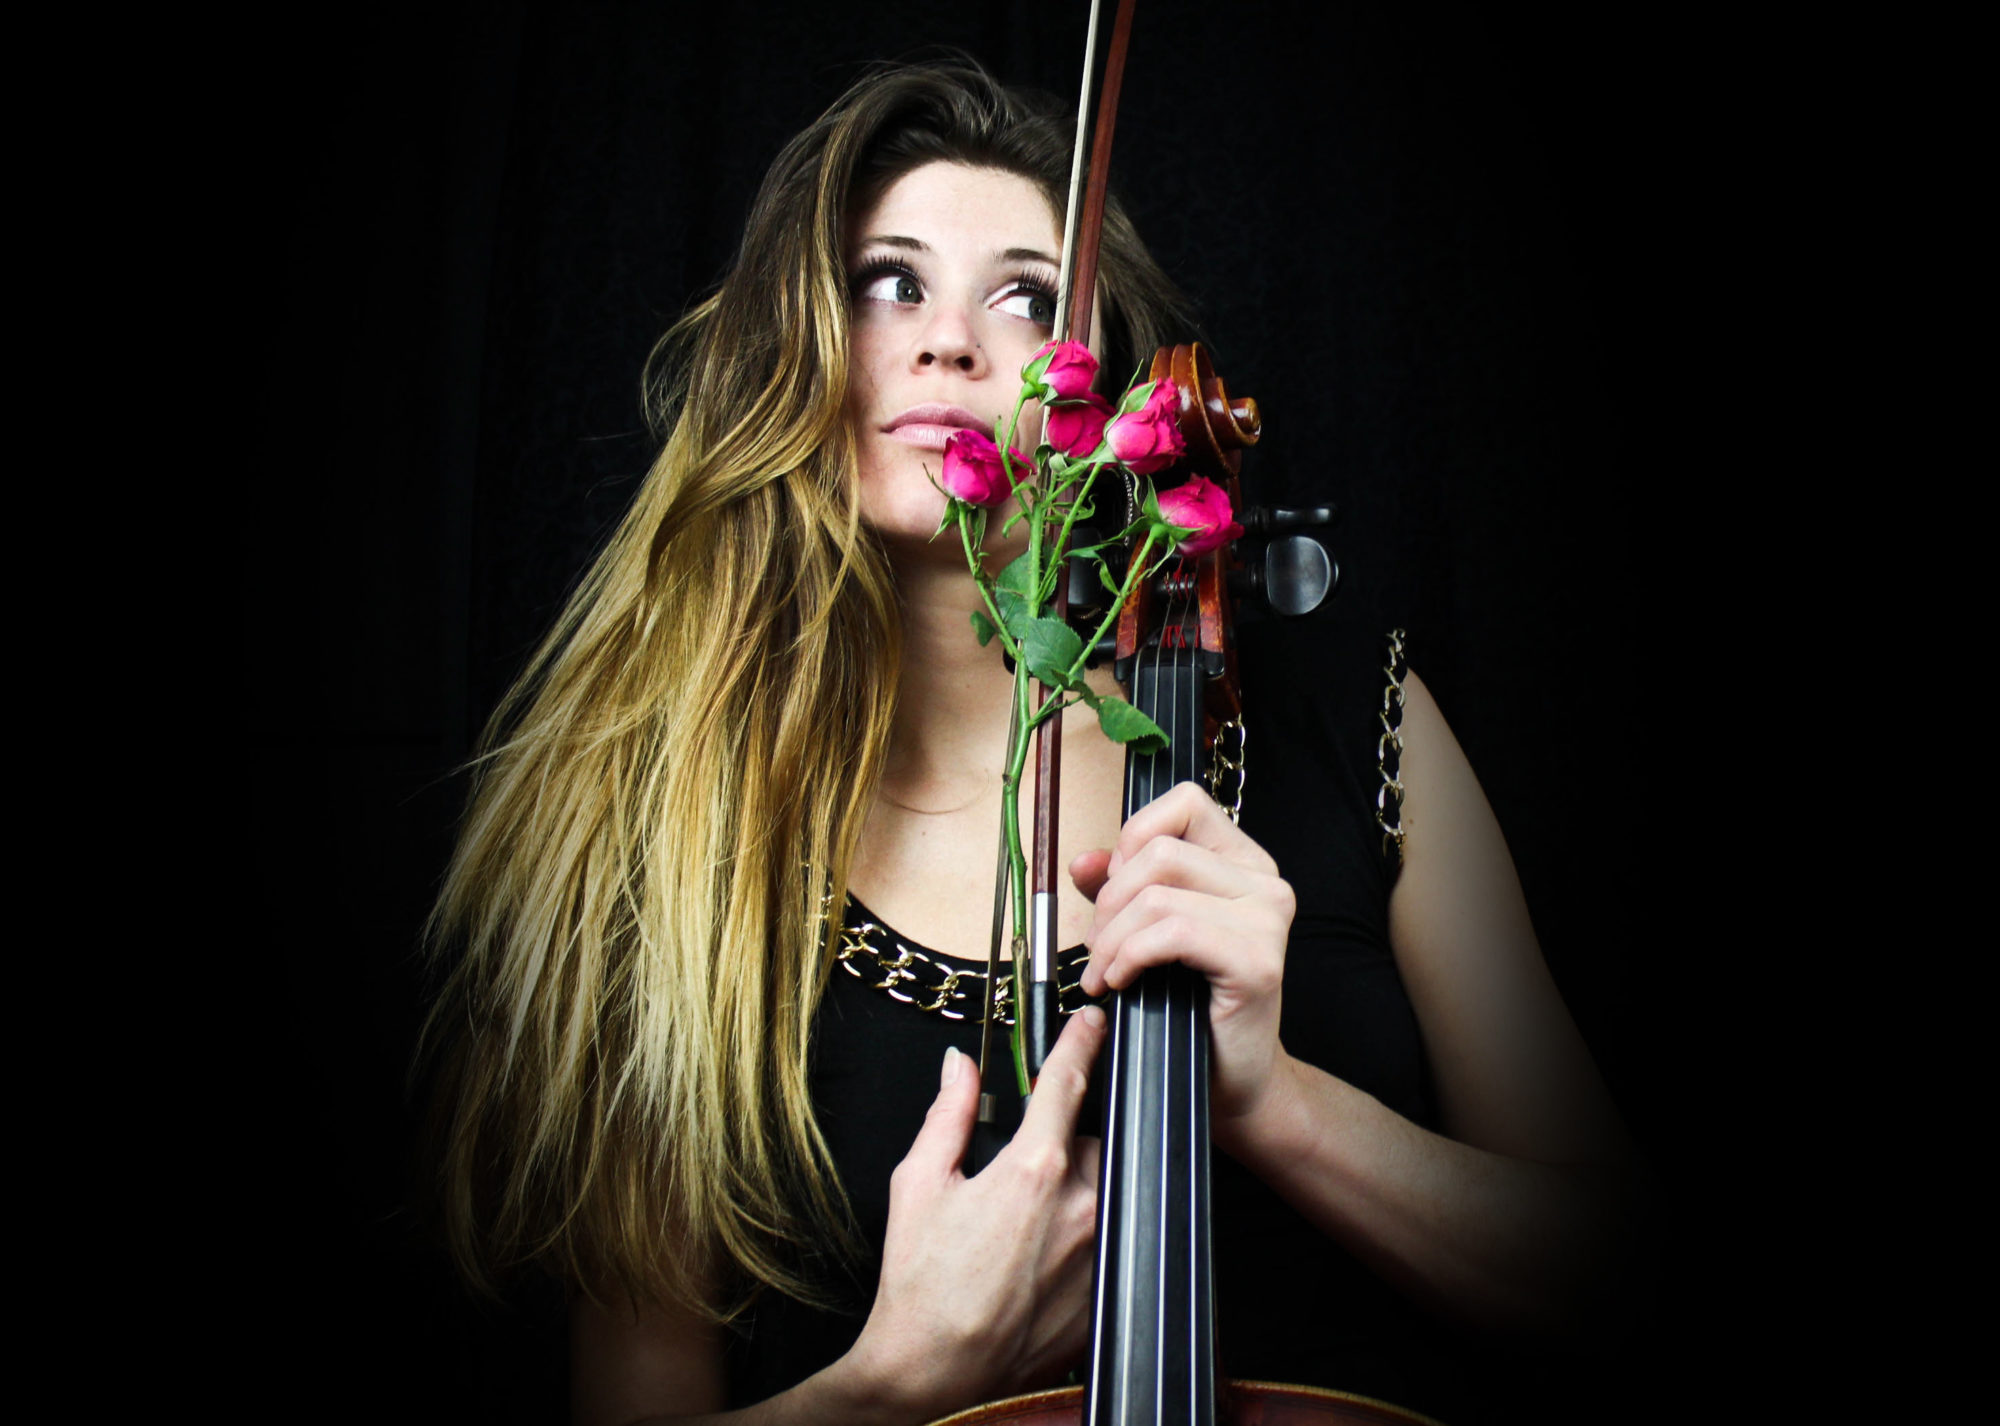 Cello by Triana